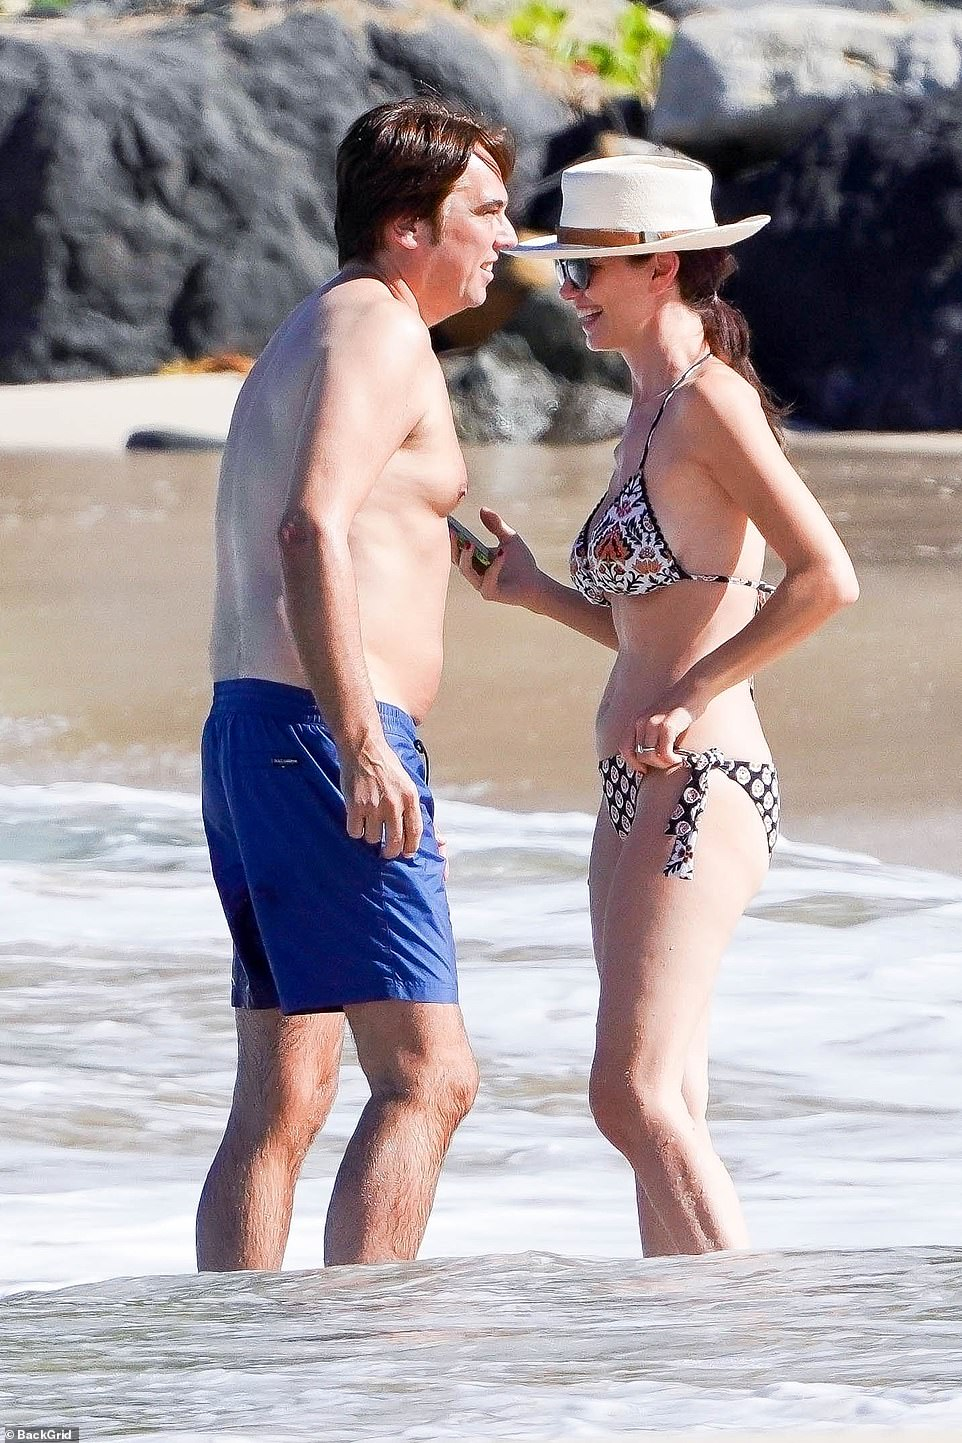 Wendi Deng cosies up with mystery man in St. Barts while flashing 'engagement ring'